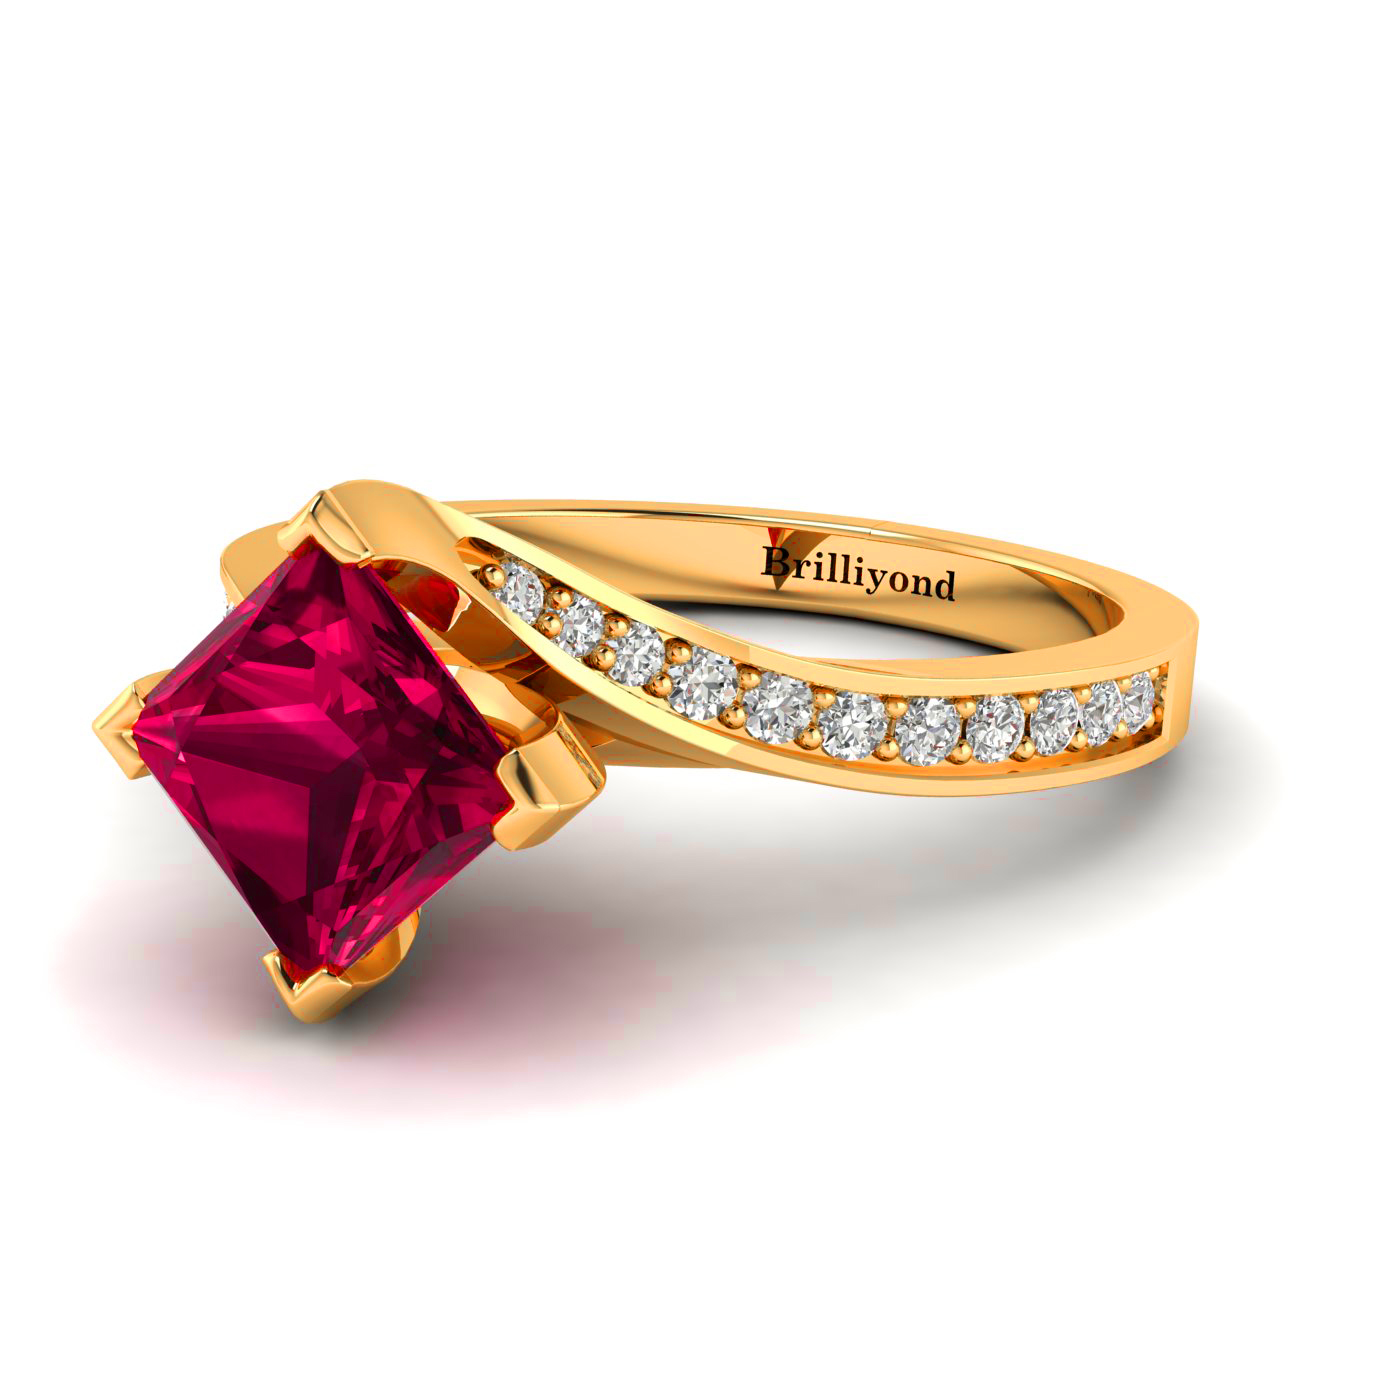 Cushion Cut Red Ruby on a Semi-twisted 18k Yellow Gold Band